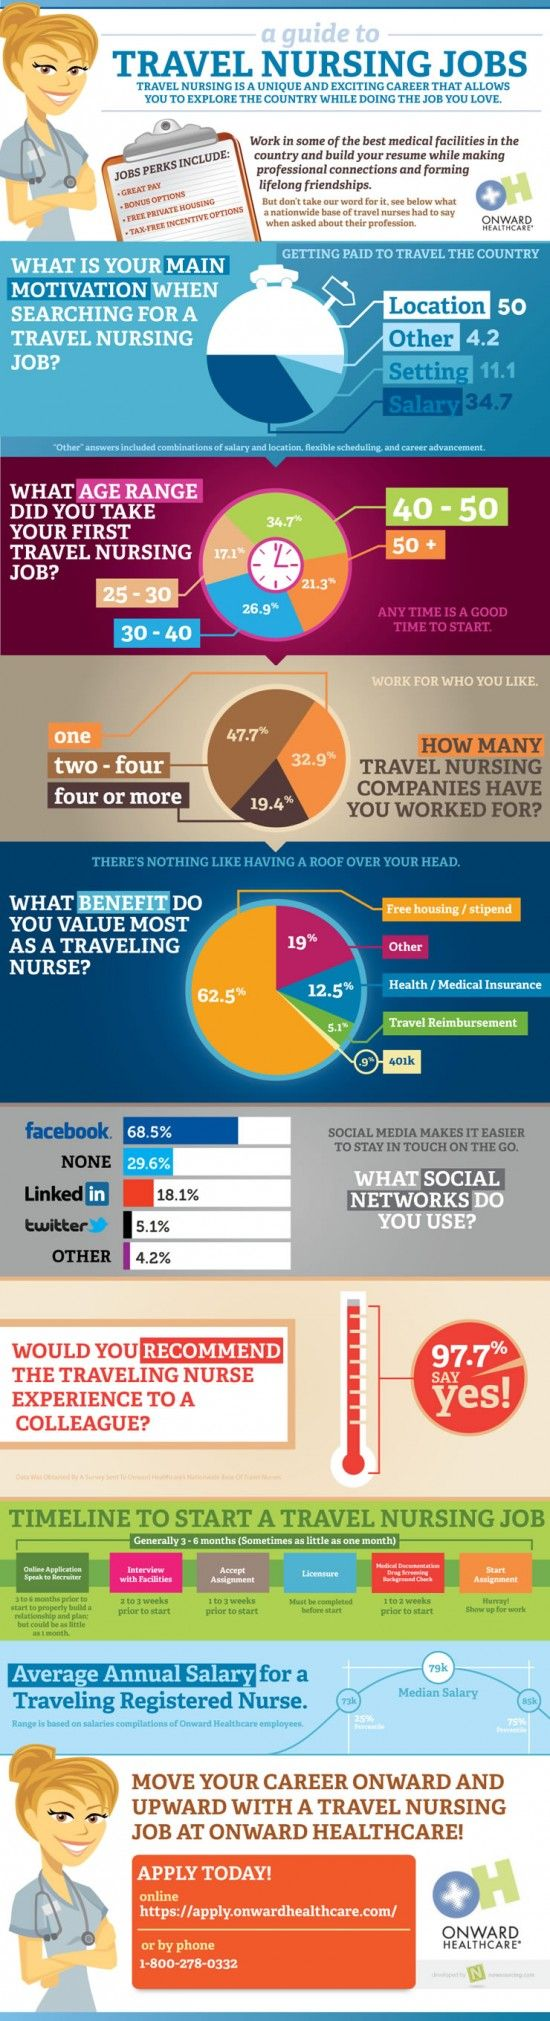 """The """"Guide To Travel Nursing Jobs"""" presents data obtained from our nationwide base of travel nurses including motivational factors in choosing a travel nurse career, age demographics, benefits information, and social media usage. In addition, the guide highlights the salary info for travel RNs as well as a timeline of the travel nursing process.    Brought to you by onwardhealthcare.com."""